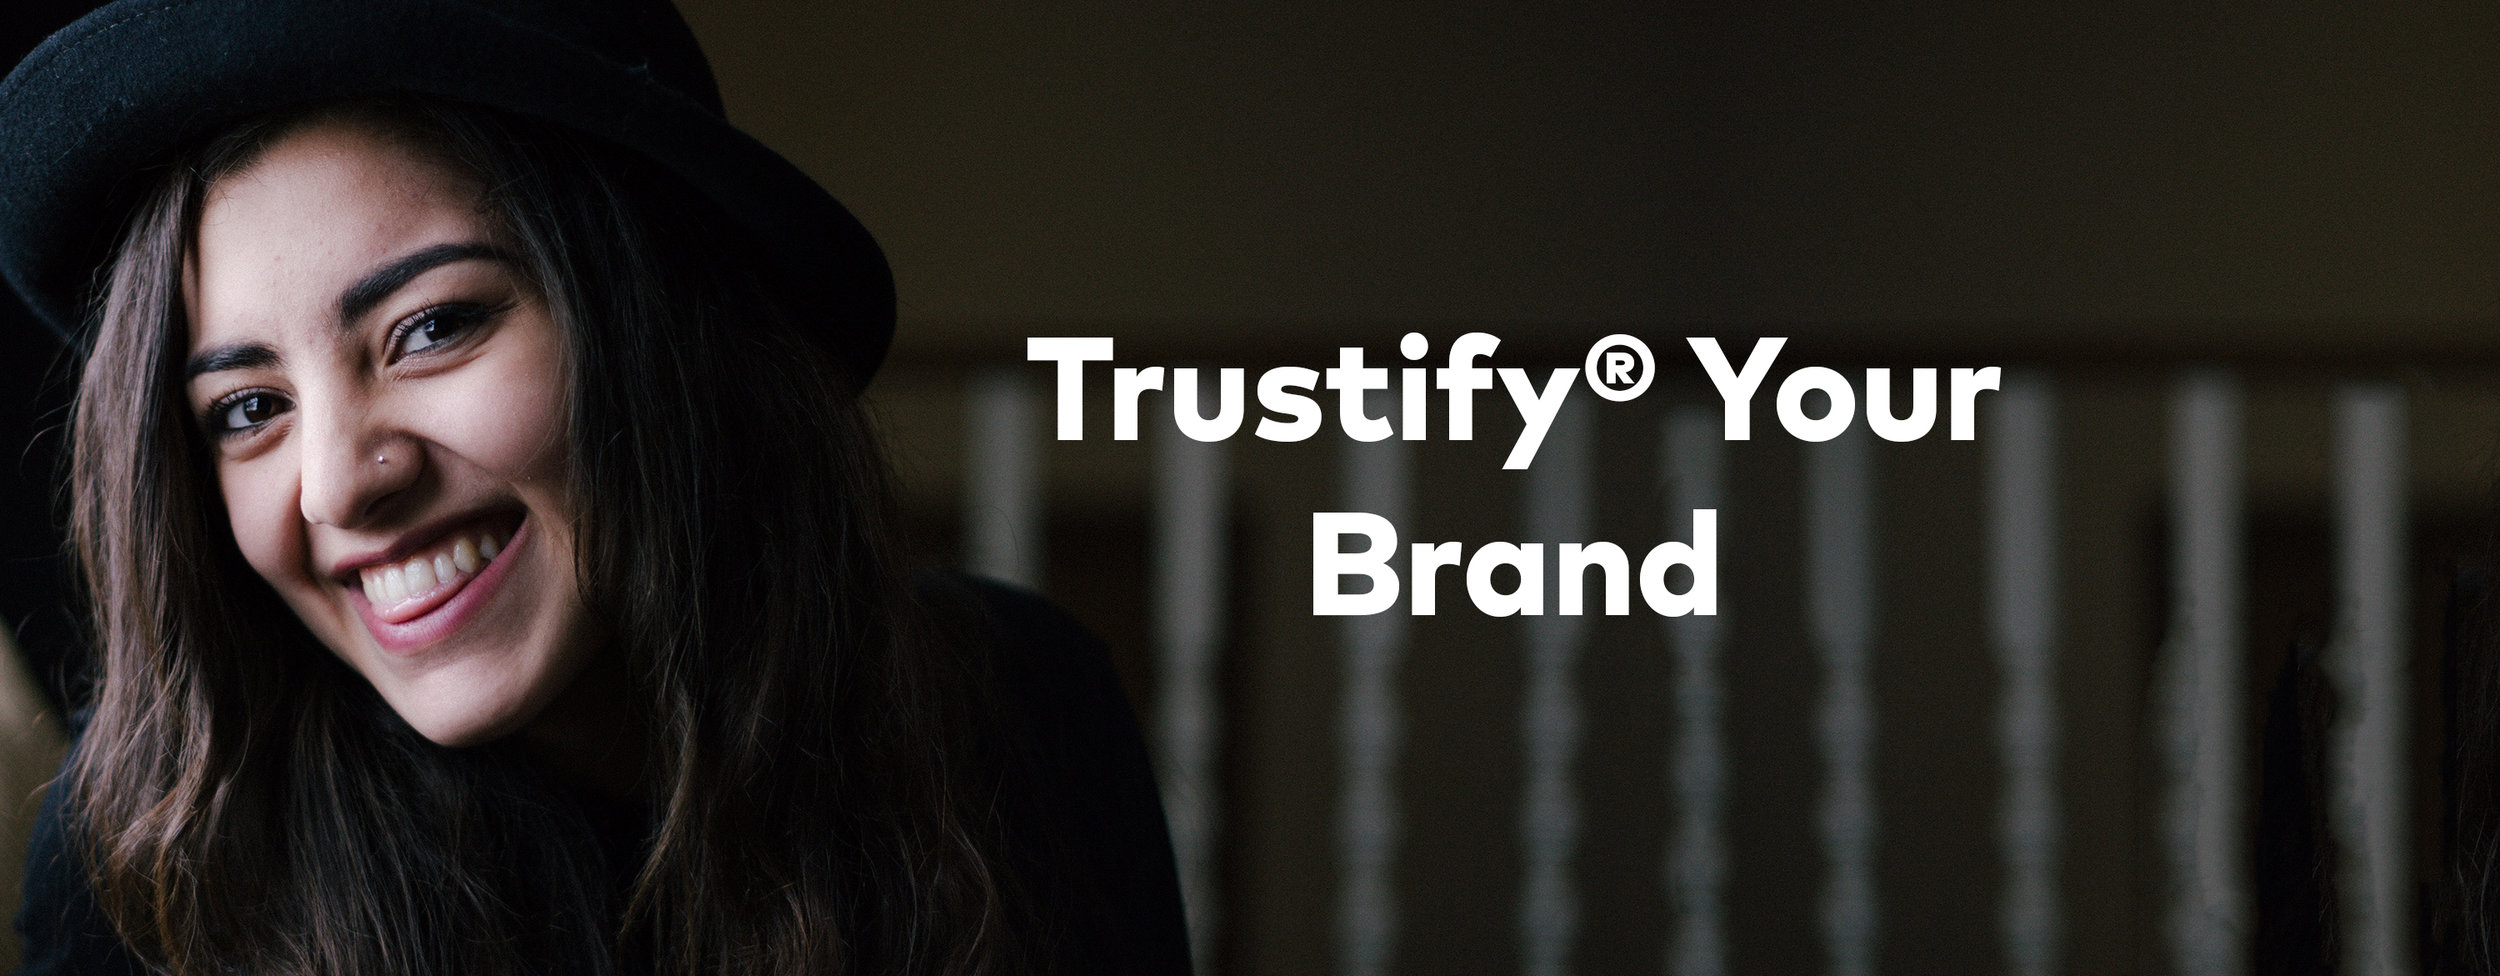 Mext_Consulting_Firm_Melbourne_Trust_Trustify_Your_Brand_Banner.jpg